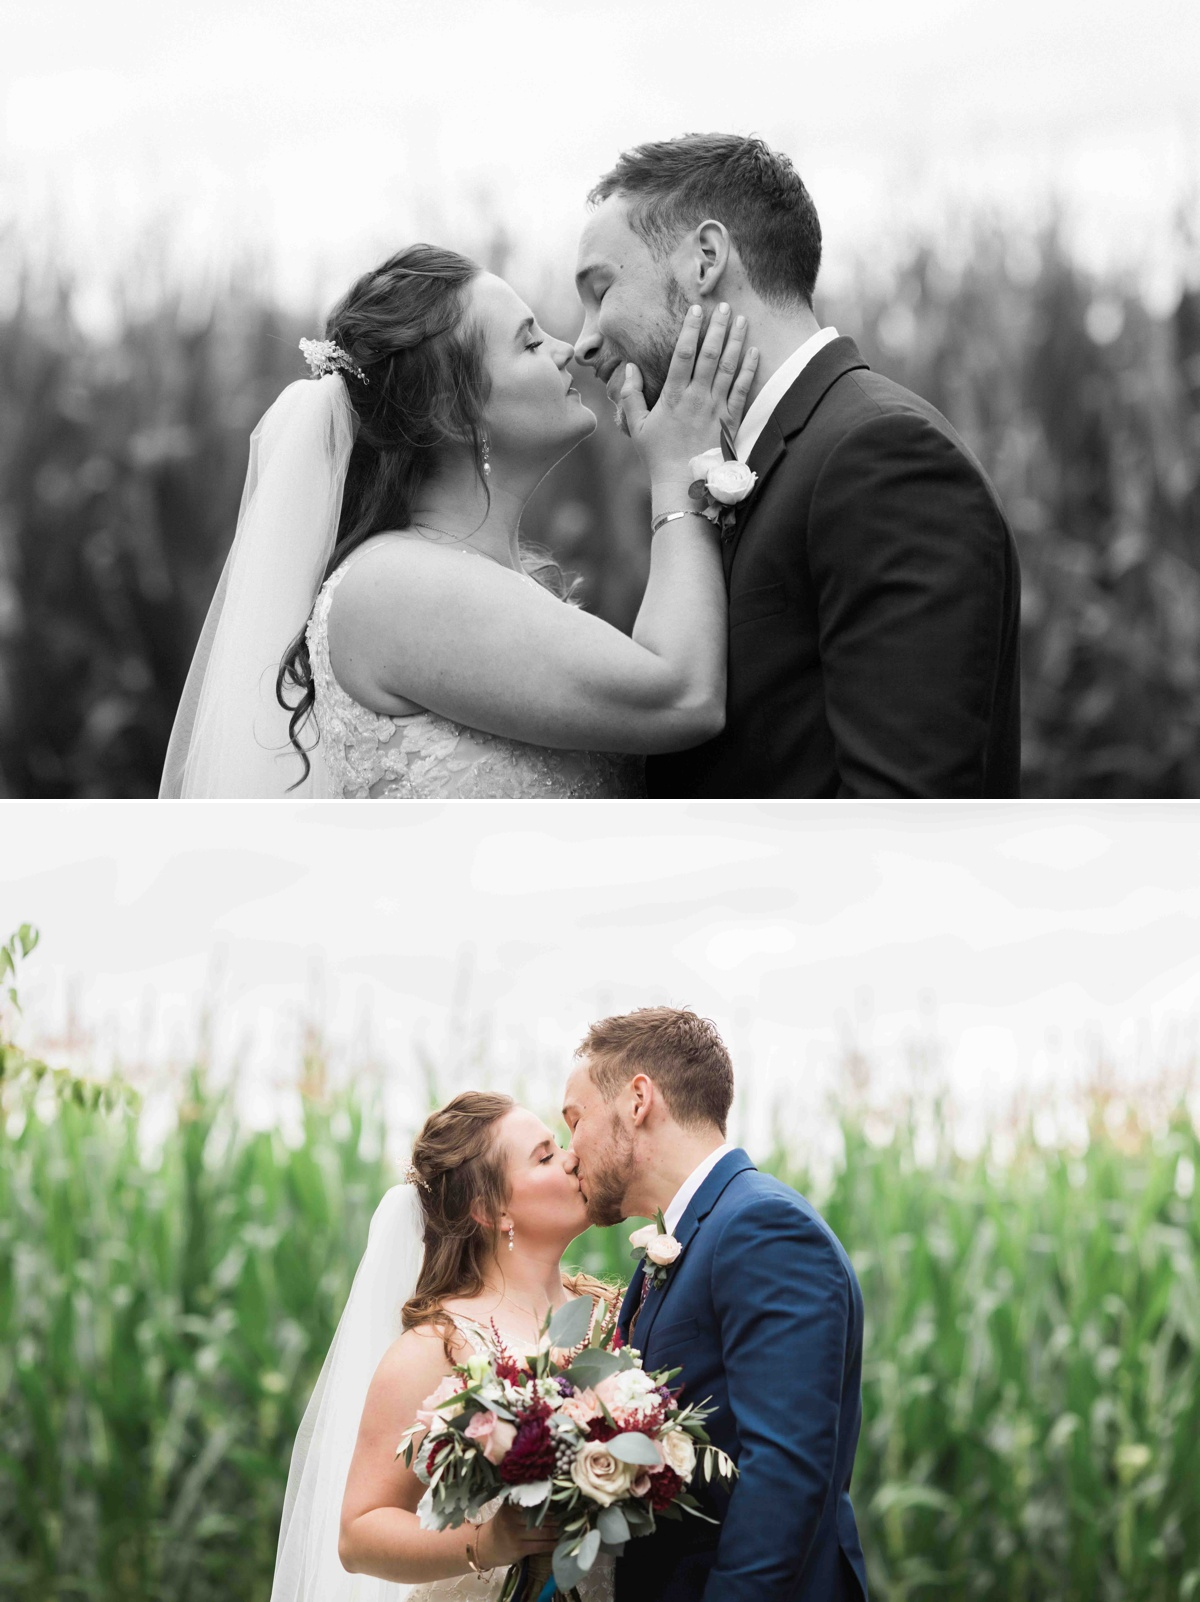 A wonderful kiss at Craven Farms in Snohomish. Photographs by Joanna Monger Photography, Snohomish's Best Wedding Photographer.